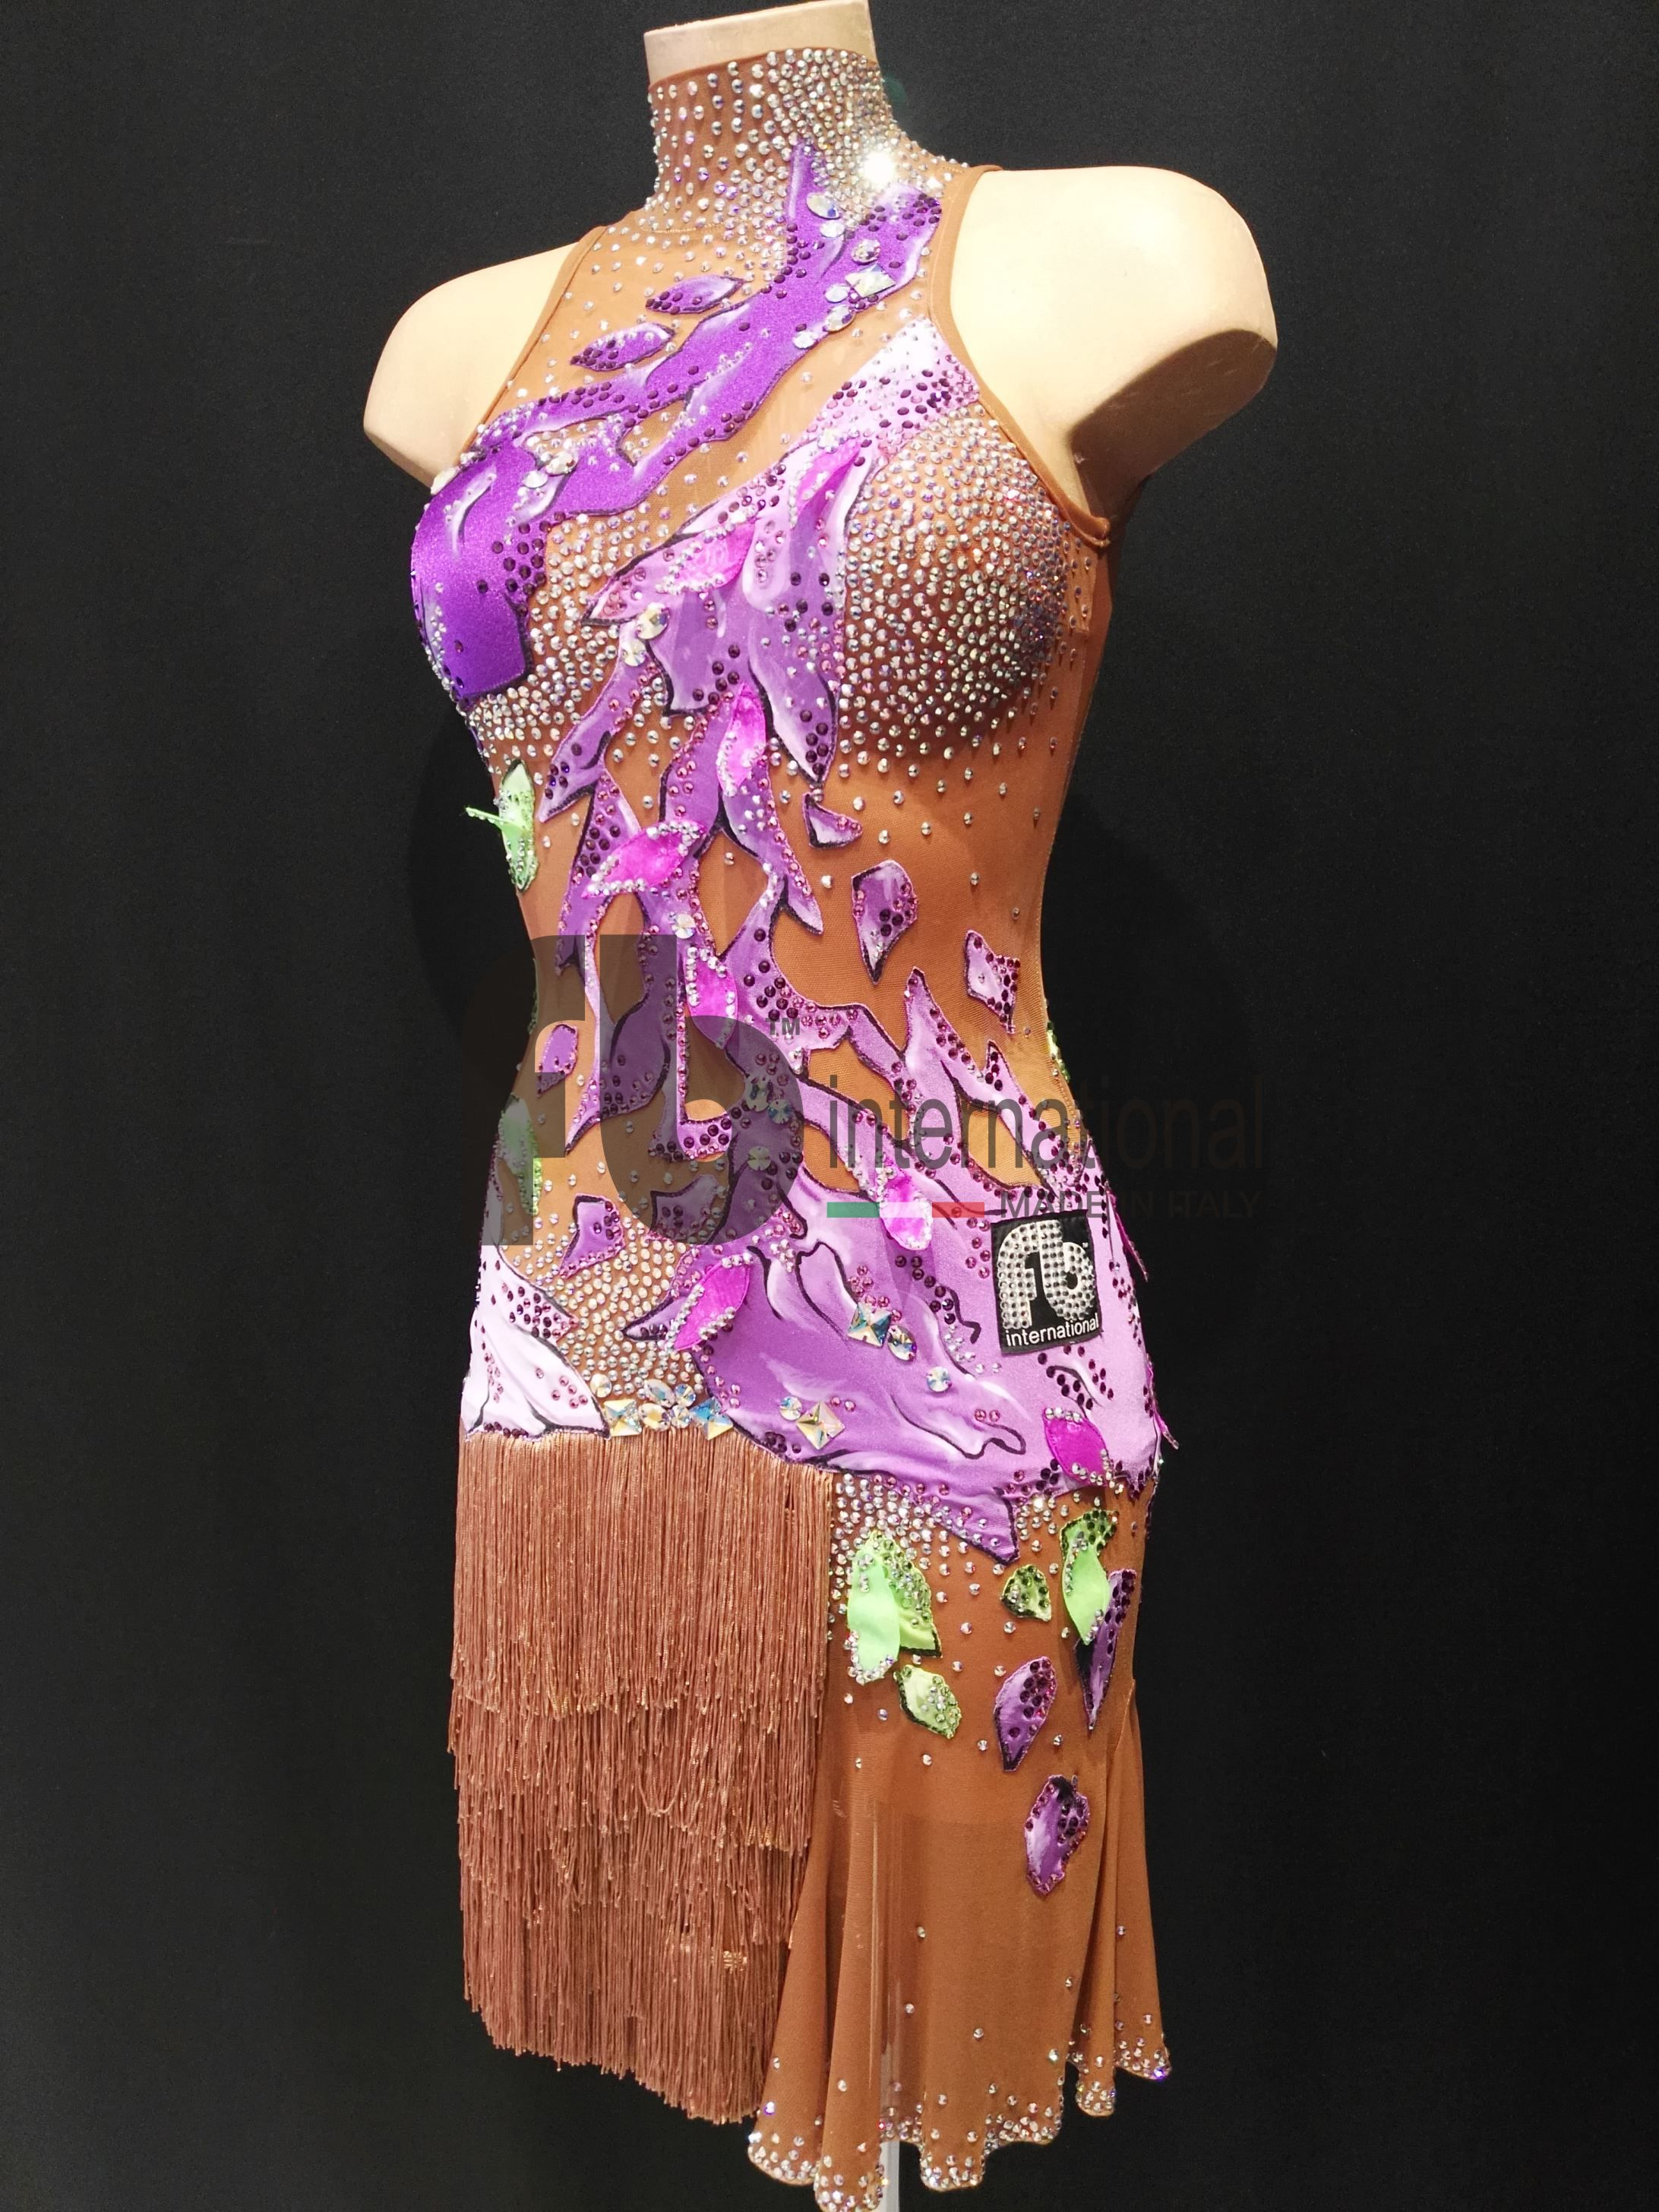 Latin dress made of flesh net with hand painted inserts and rhinestones